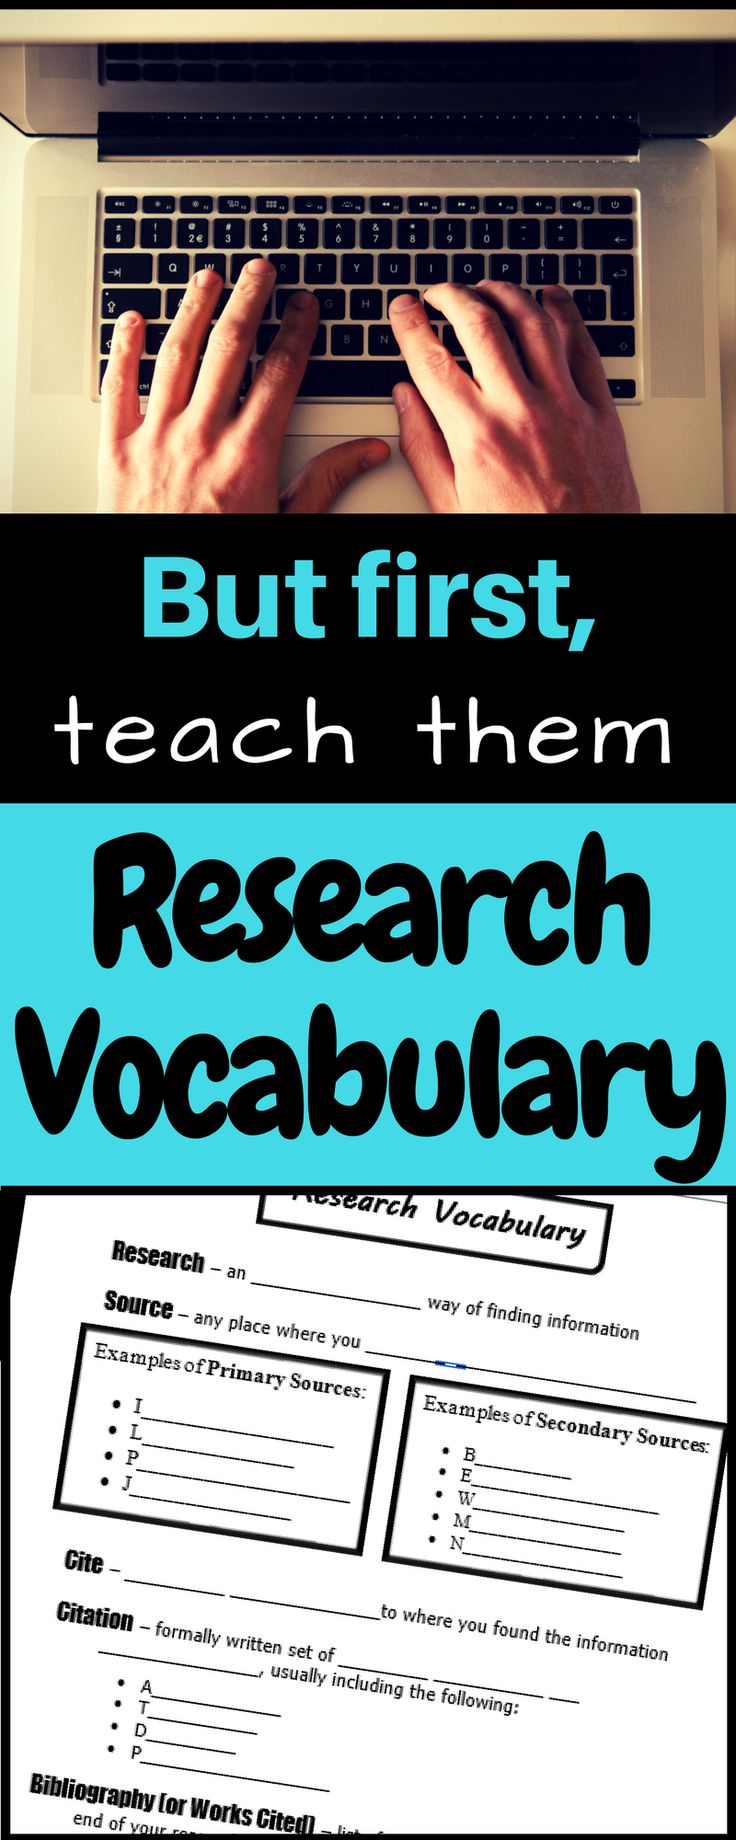 Before beginning your class's research project, teach your students the research vocabulary terms they will need to do it! This vocabulary activity introduces important research concepts like sources, citations, bibliography/works cited, and MLA format. It's perfect for beginning researchers!